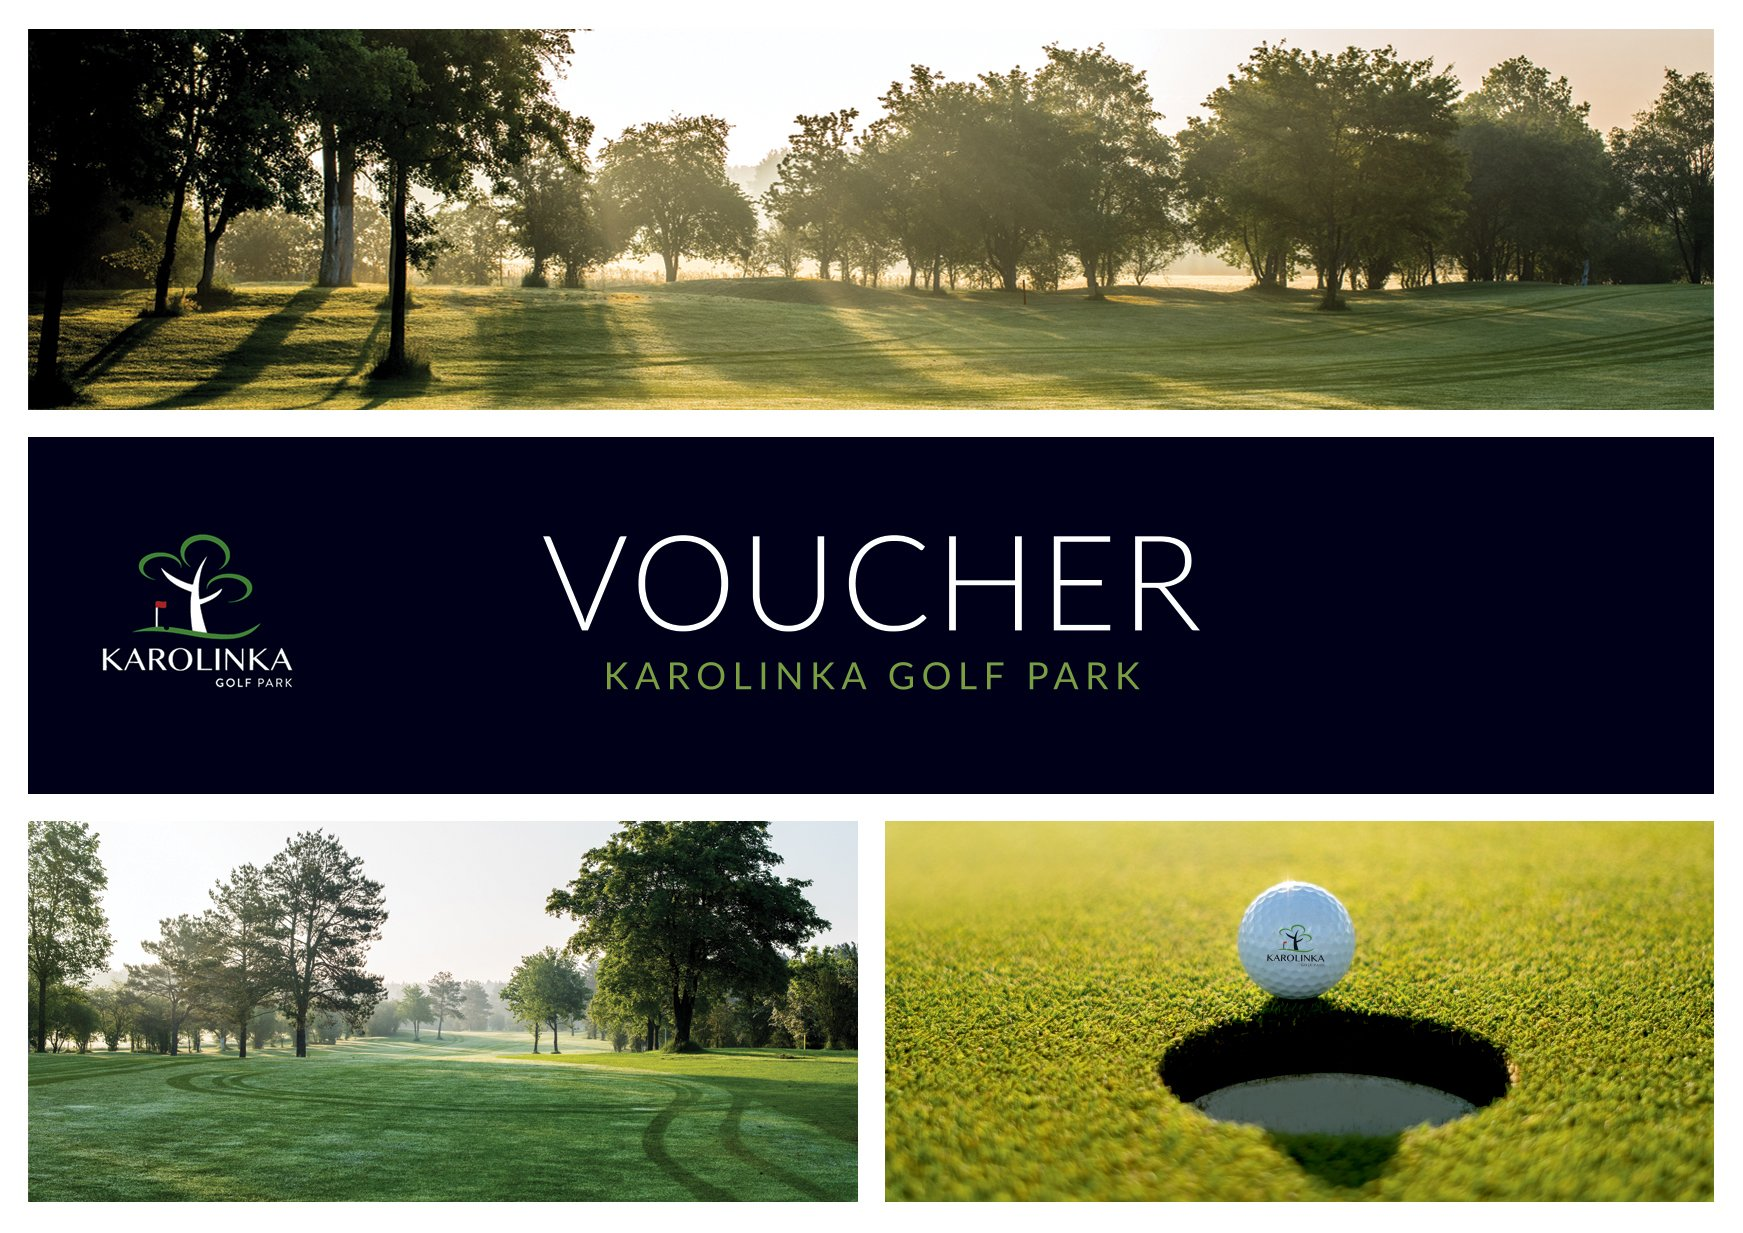 Voucher Karolinka Golf Park